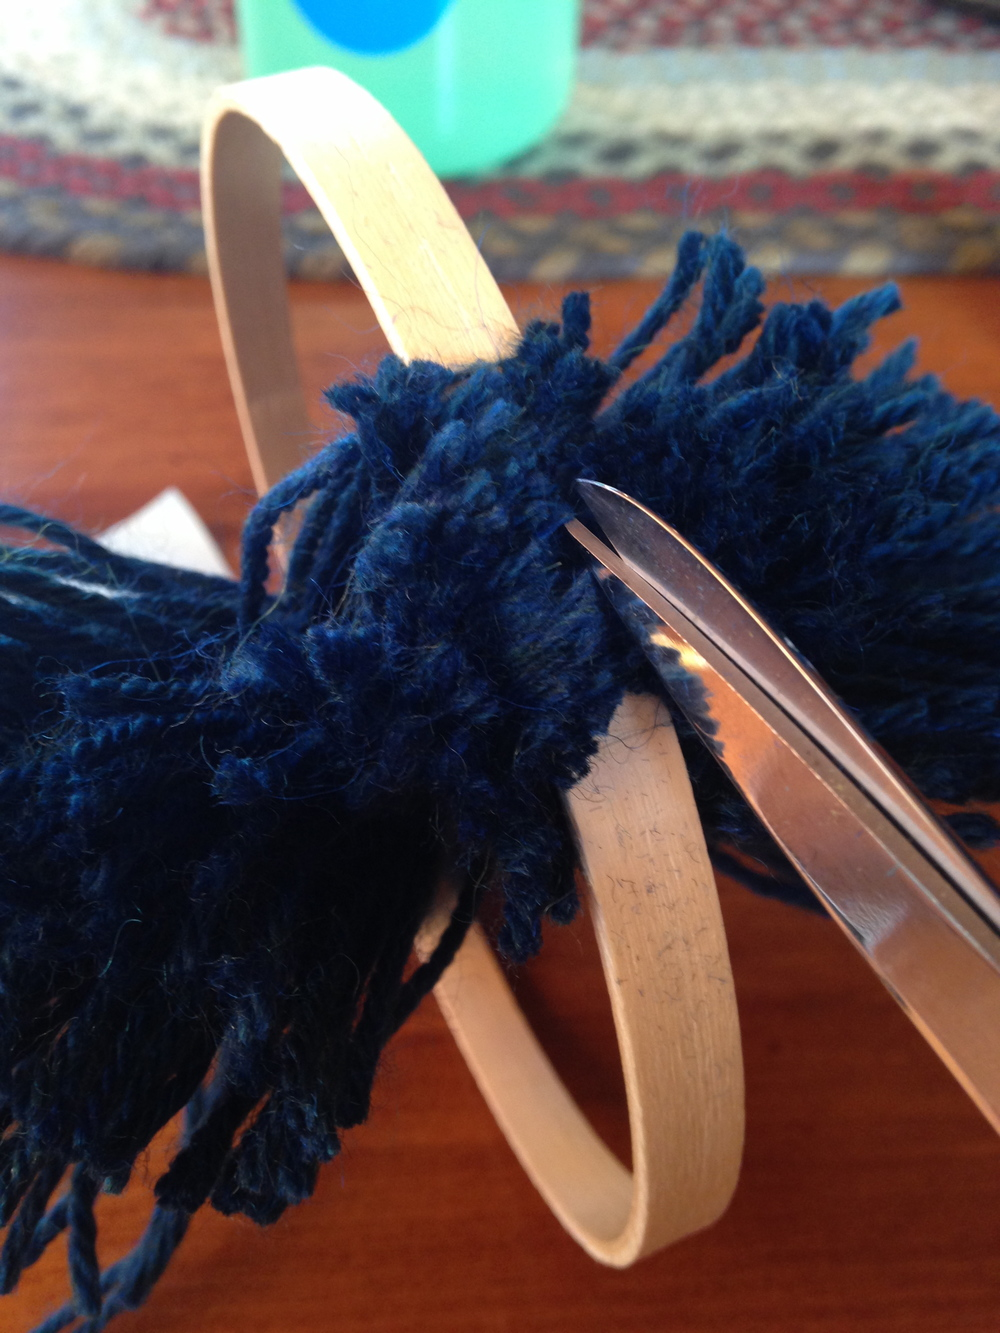 Here is where your sharp scissors comes into play as you cut through all that yarn!